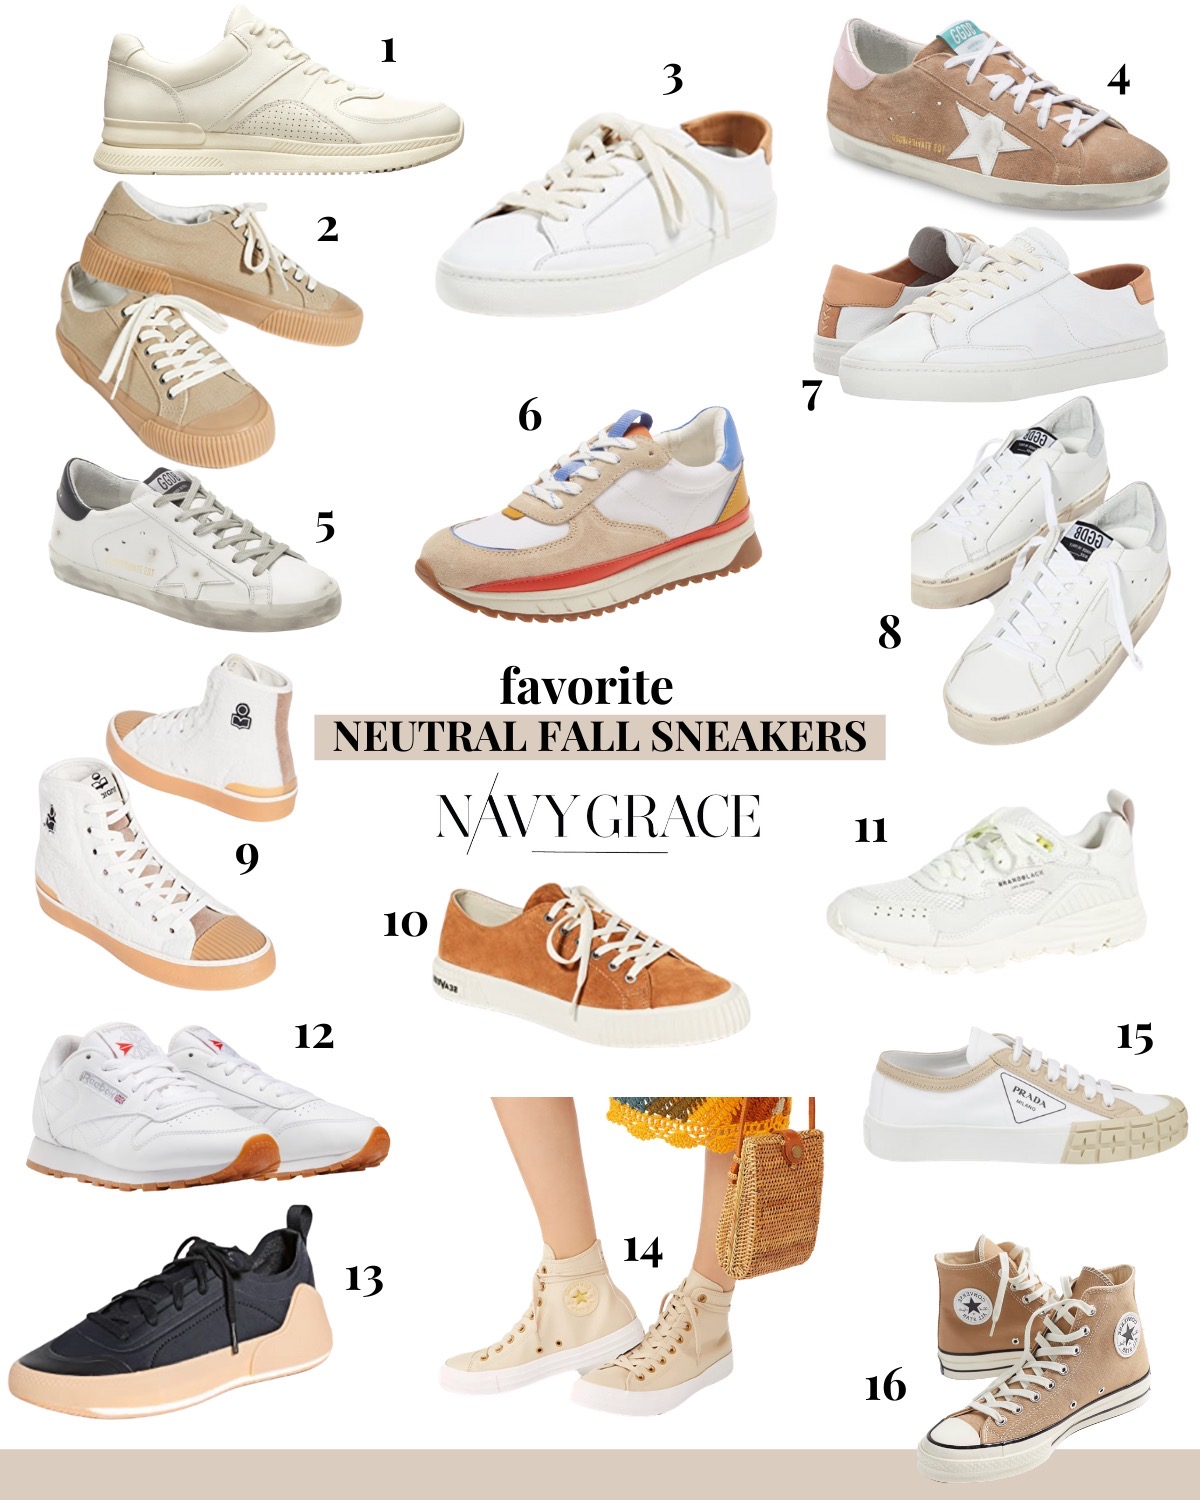 Fall Sneakers for Women by popular San Diego fashion blog, Navy Grace: image of women's high top sneakers, athletic sneakers, and suede sneakers.